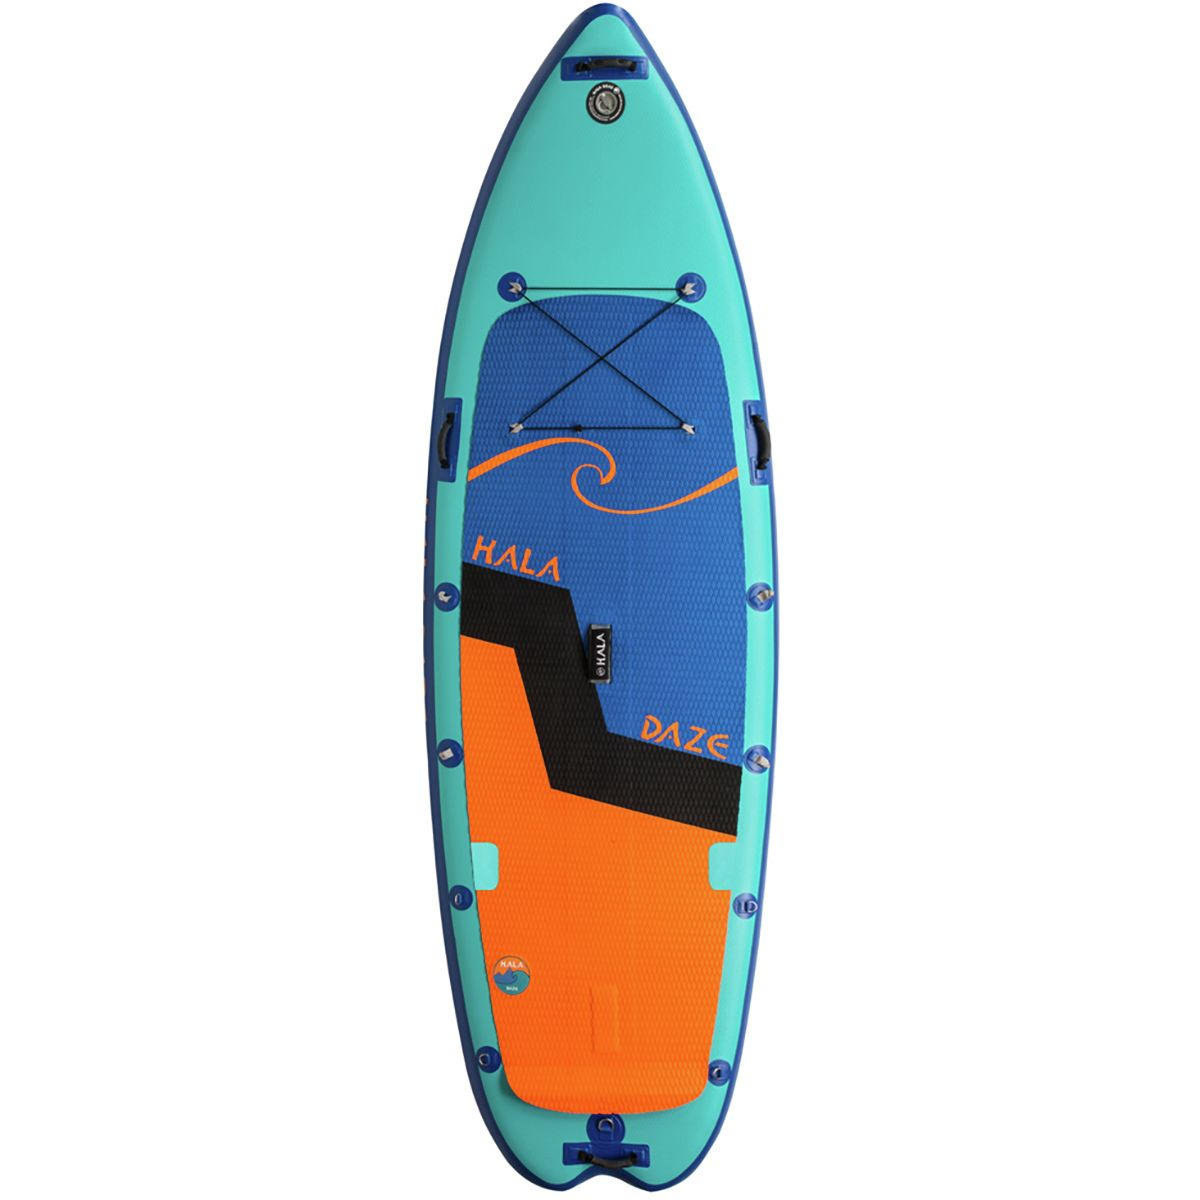 Hala Daze Stand Up Paddleboard One Color 11ft 11in